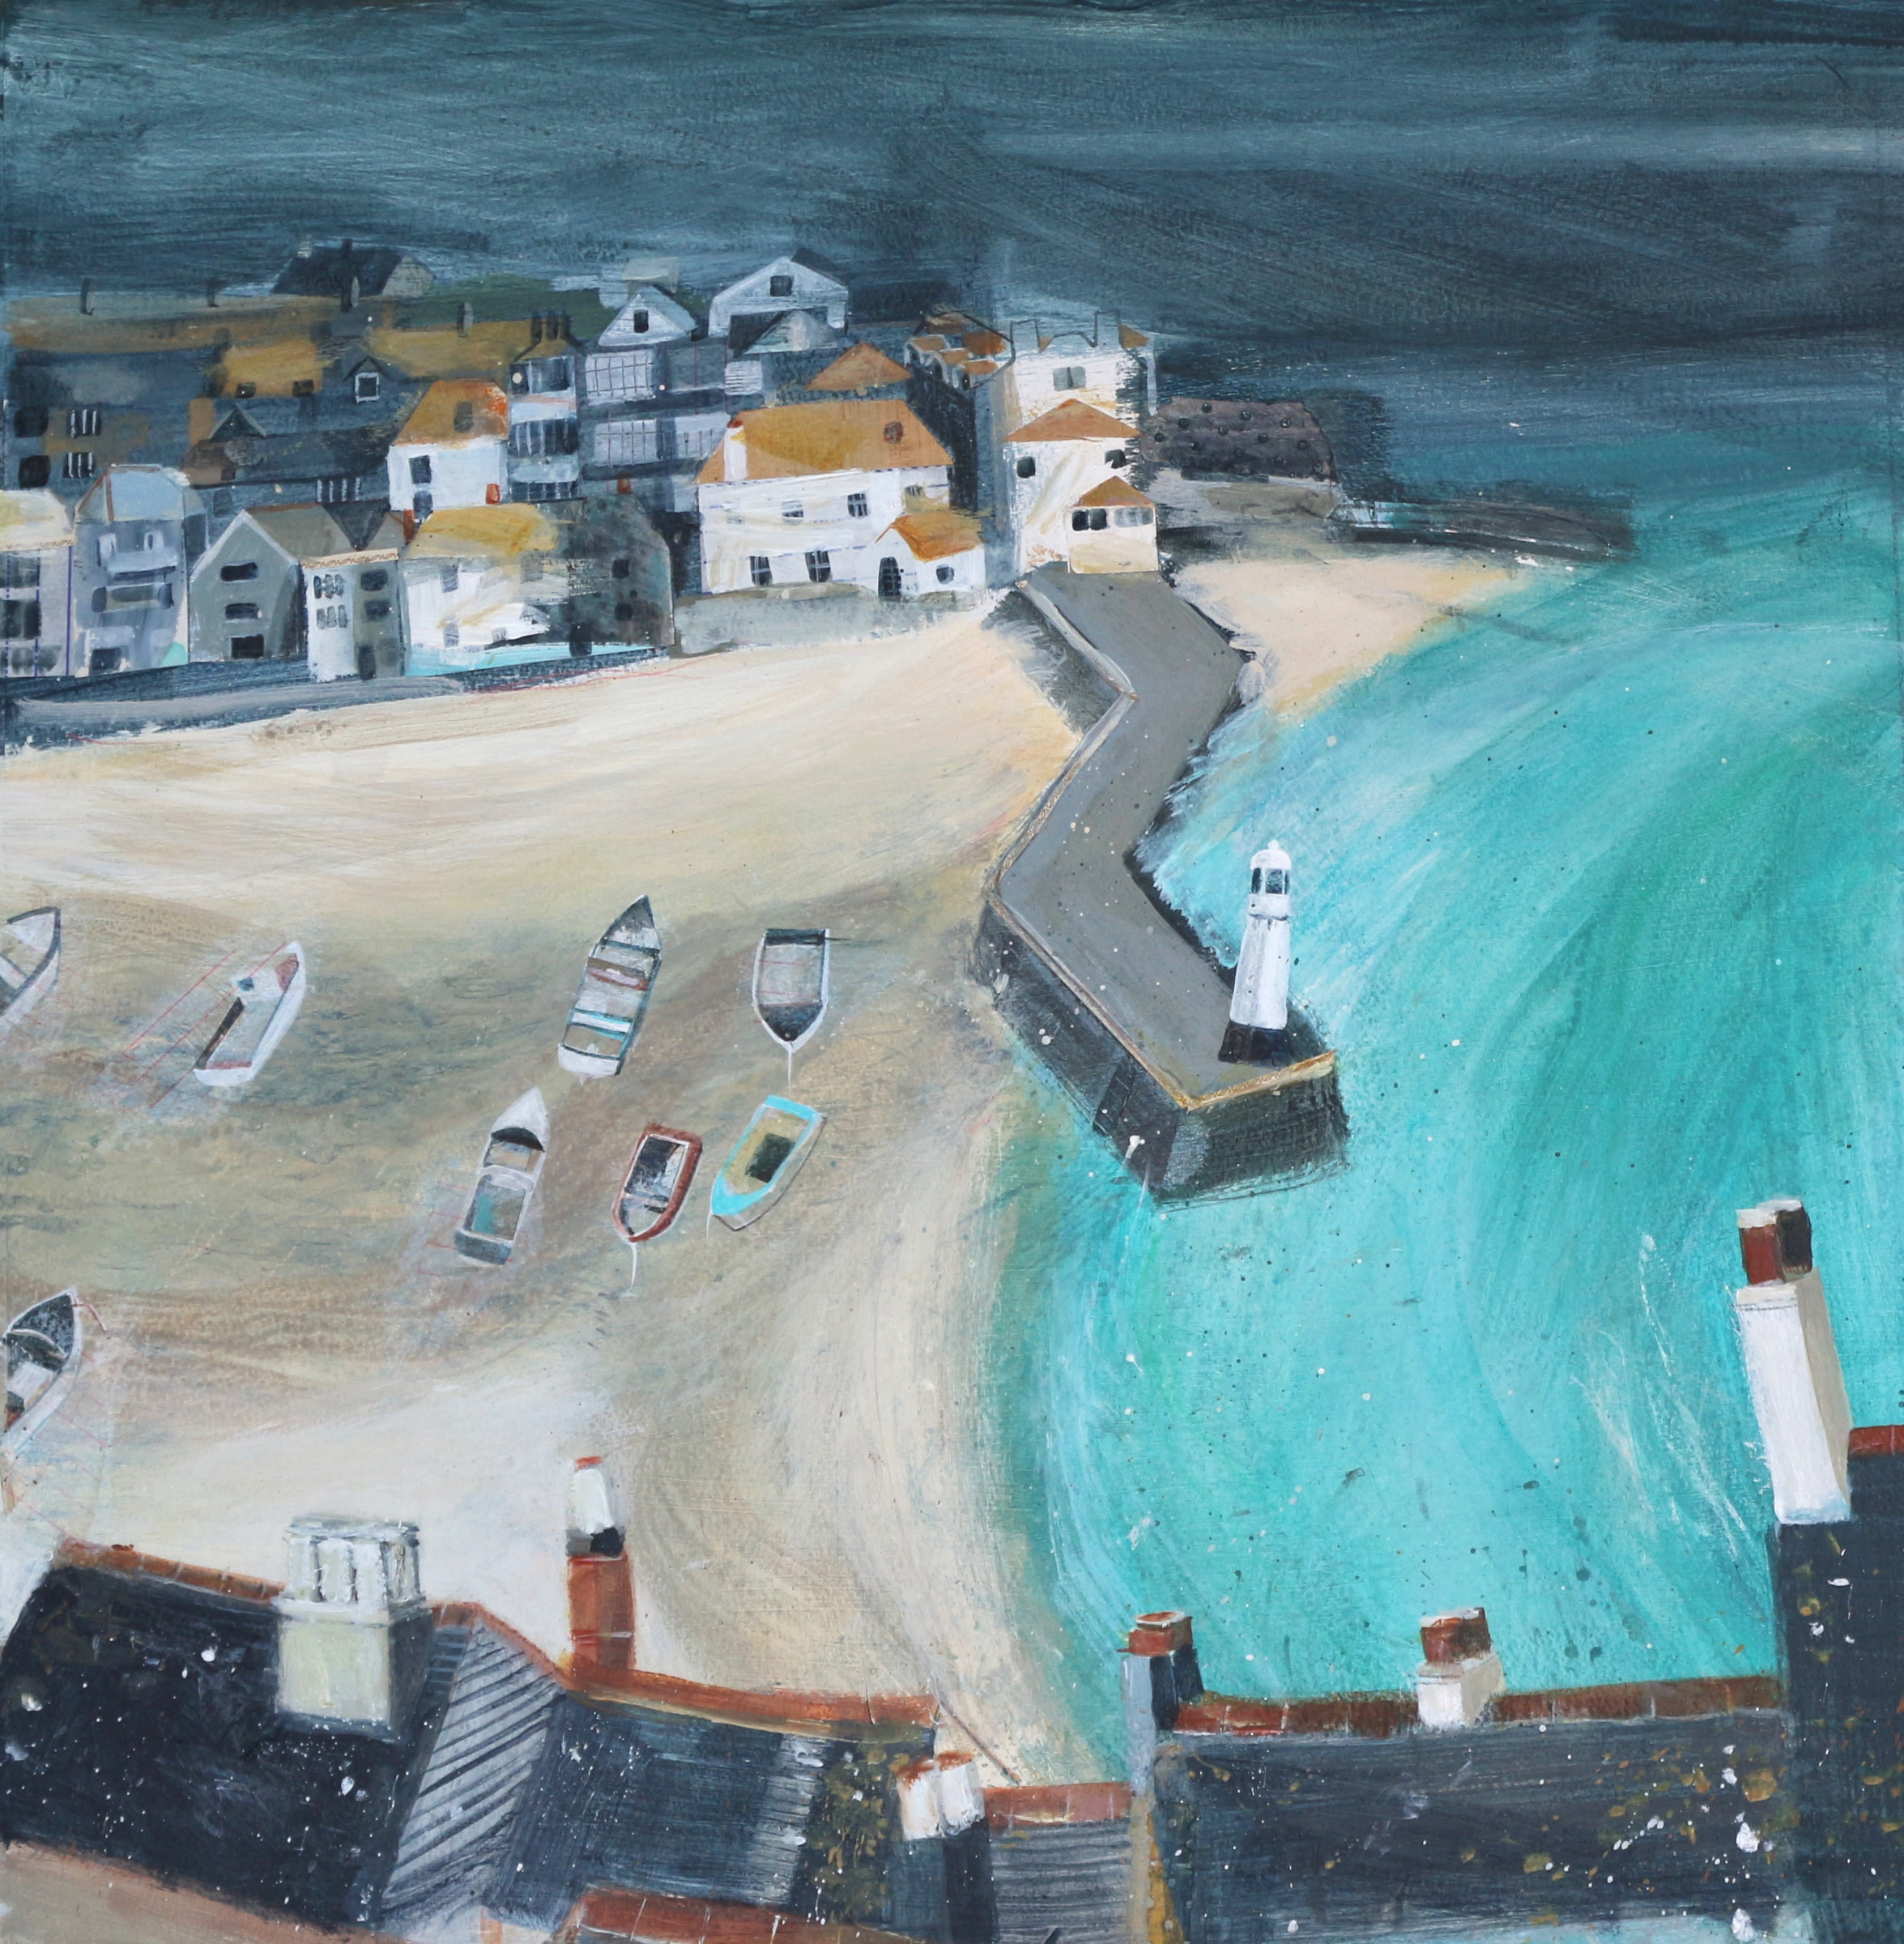 <span class=&#34;link fancybox-details-link&#34;><a href=&#34;/artists/177-jane-askey/works/5521-jane-askey-smeaton-s-pier-from-above-2018/&#34;>View Detail Page</a></span><div class=&#34;artist&#34;><strong>Jane Askey</strong></div> <div class=&#34;title&#34;><em>Smeaton's Pier from Above</em>, 2018</div> <div class=&#34;signed_and_dated&#34;>signed</div> <div class=&#34;medium&#34;>mixed media on paper</div> <div class=&#34;dimensions&#34;>53 x 53 cm<br /> 20 7/8 x 20 7/8 inches</div><div class=&#34;copyright_line&#34;>OwnArt: £ 95 x 10 Months, 0% APR</div>